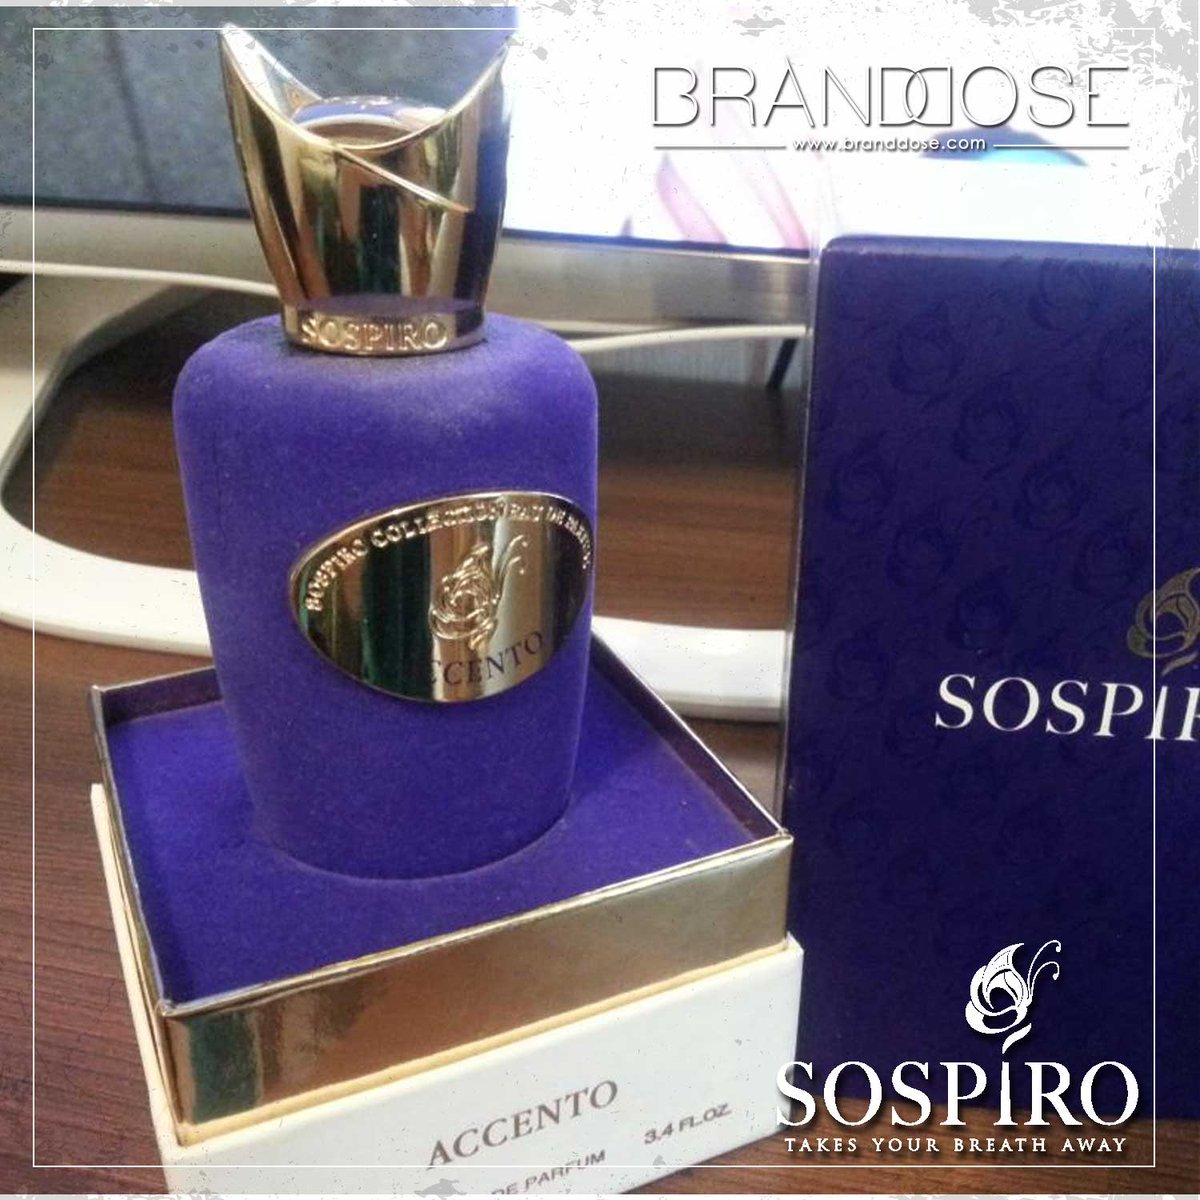 Branddose On Twitter Accento Sospiro 979 Aed Now Available At